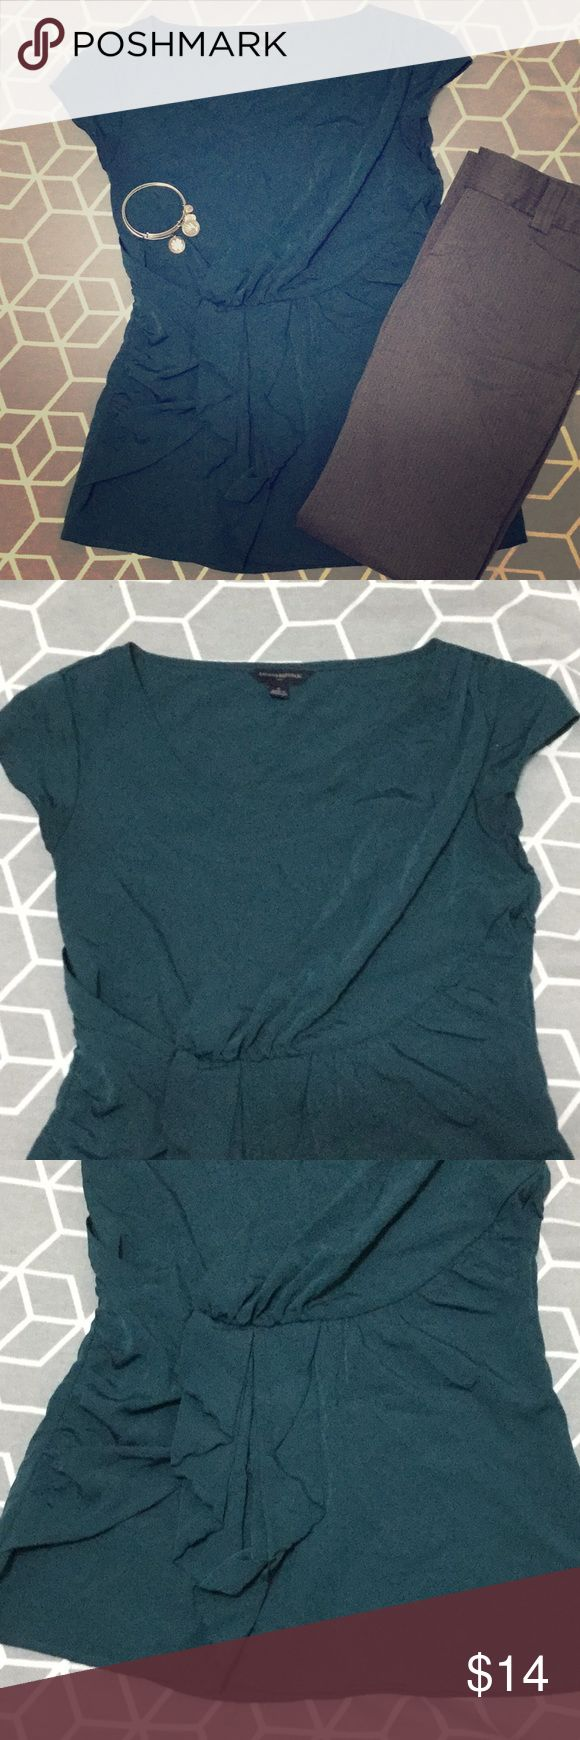 Banana Republic Blouse Deep green Banana Republic Blouse ❣️Gray Banana Republic Pants Also Available❣️Bundle & Save!  Hidden zipper on right side Cap sleeves Gathering across chest and over belly  Measurements (laid flat): Bust: 35 inches  Length: 25 inches   100% Polyester Banana Republic Tops Blouses